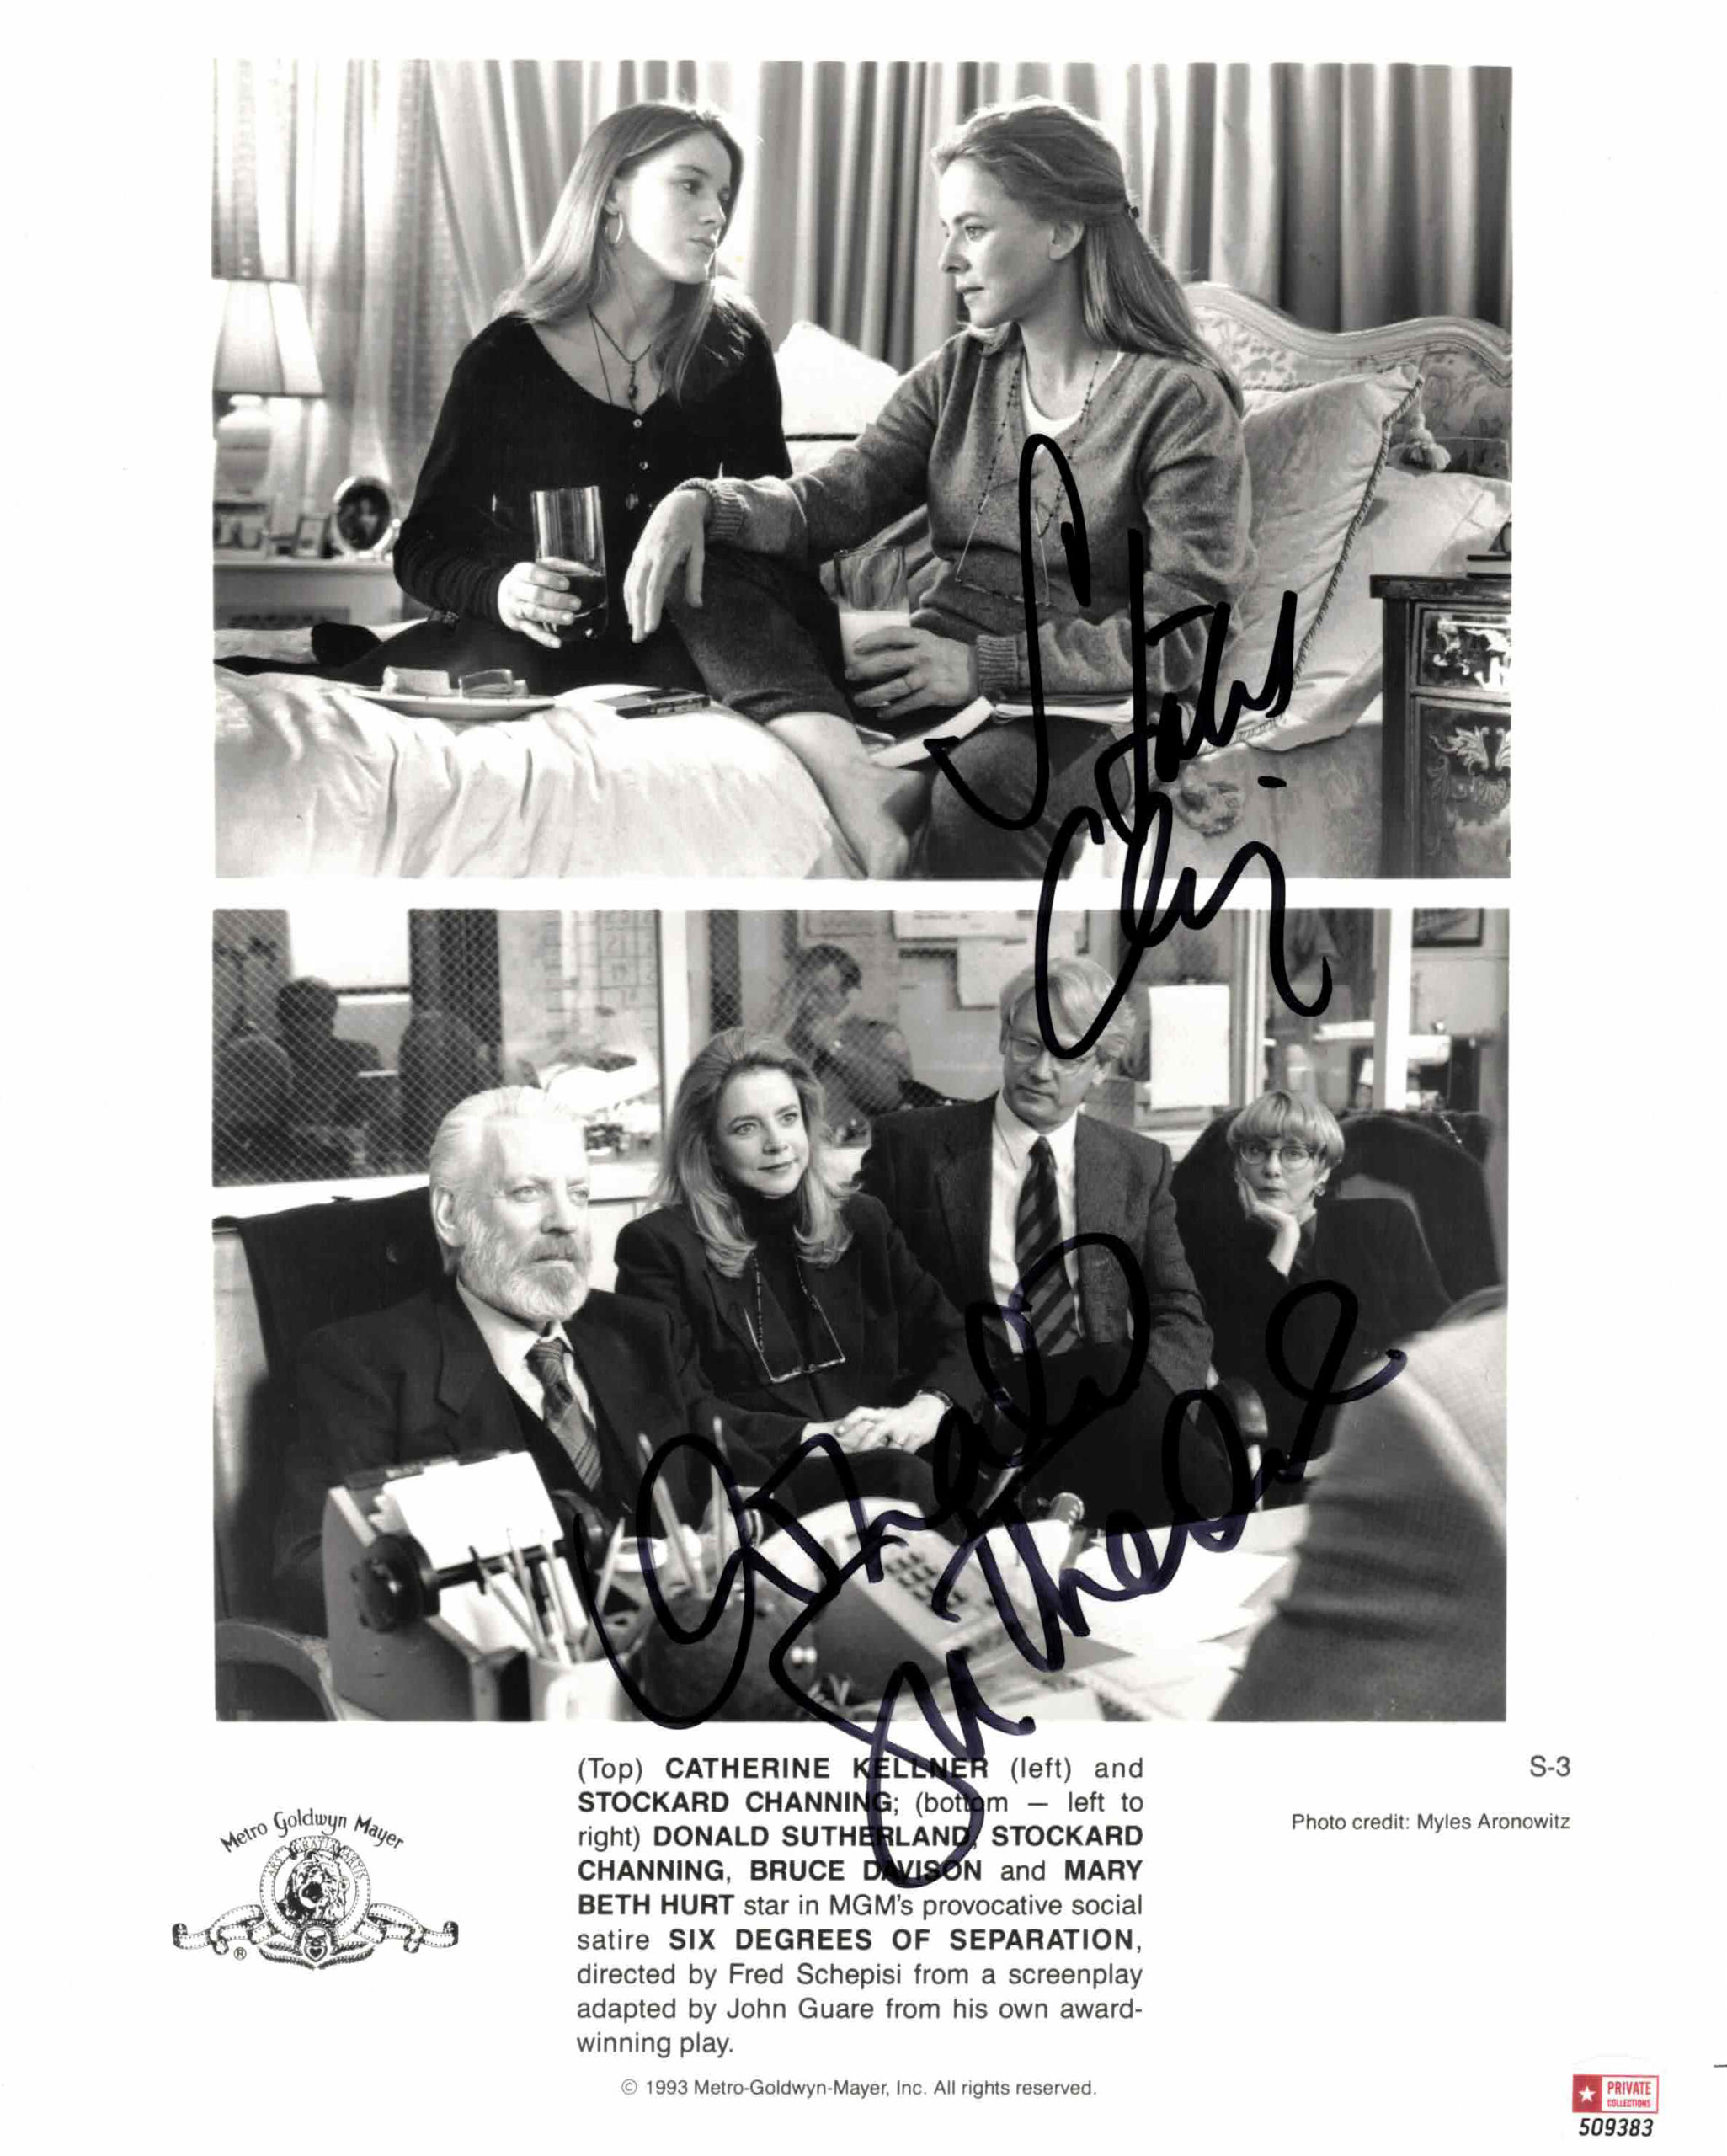 Donald Sutherland & Stockard Channing - autogram